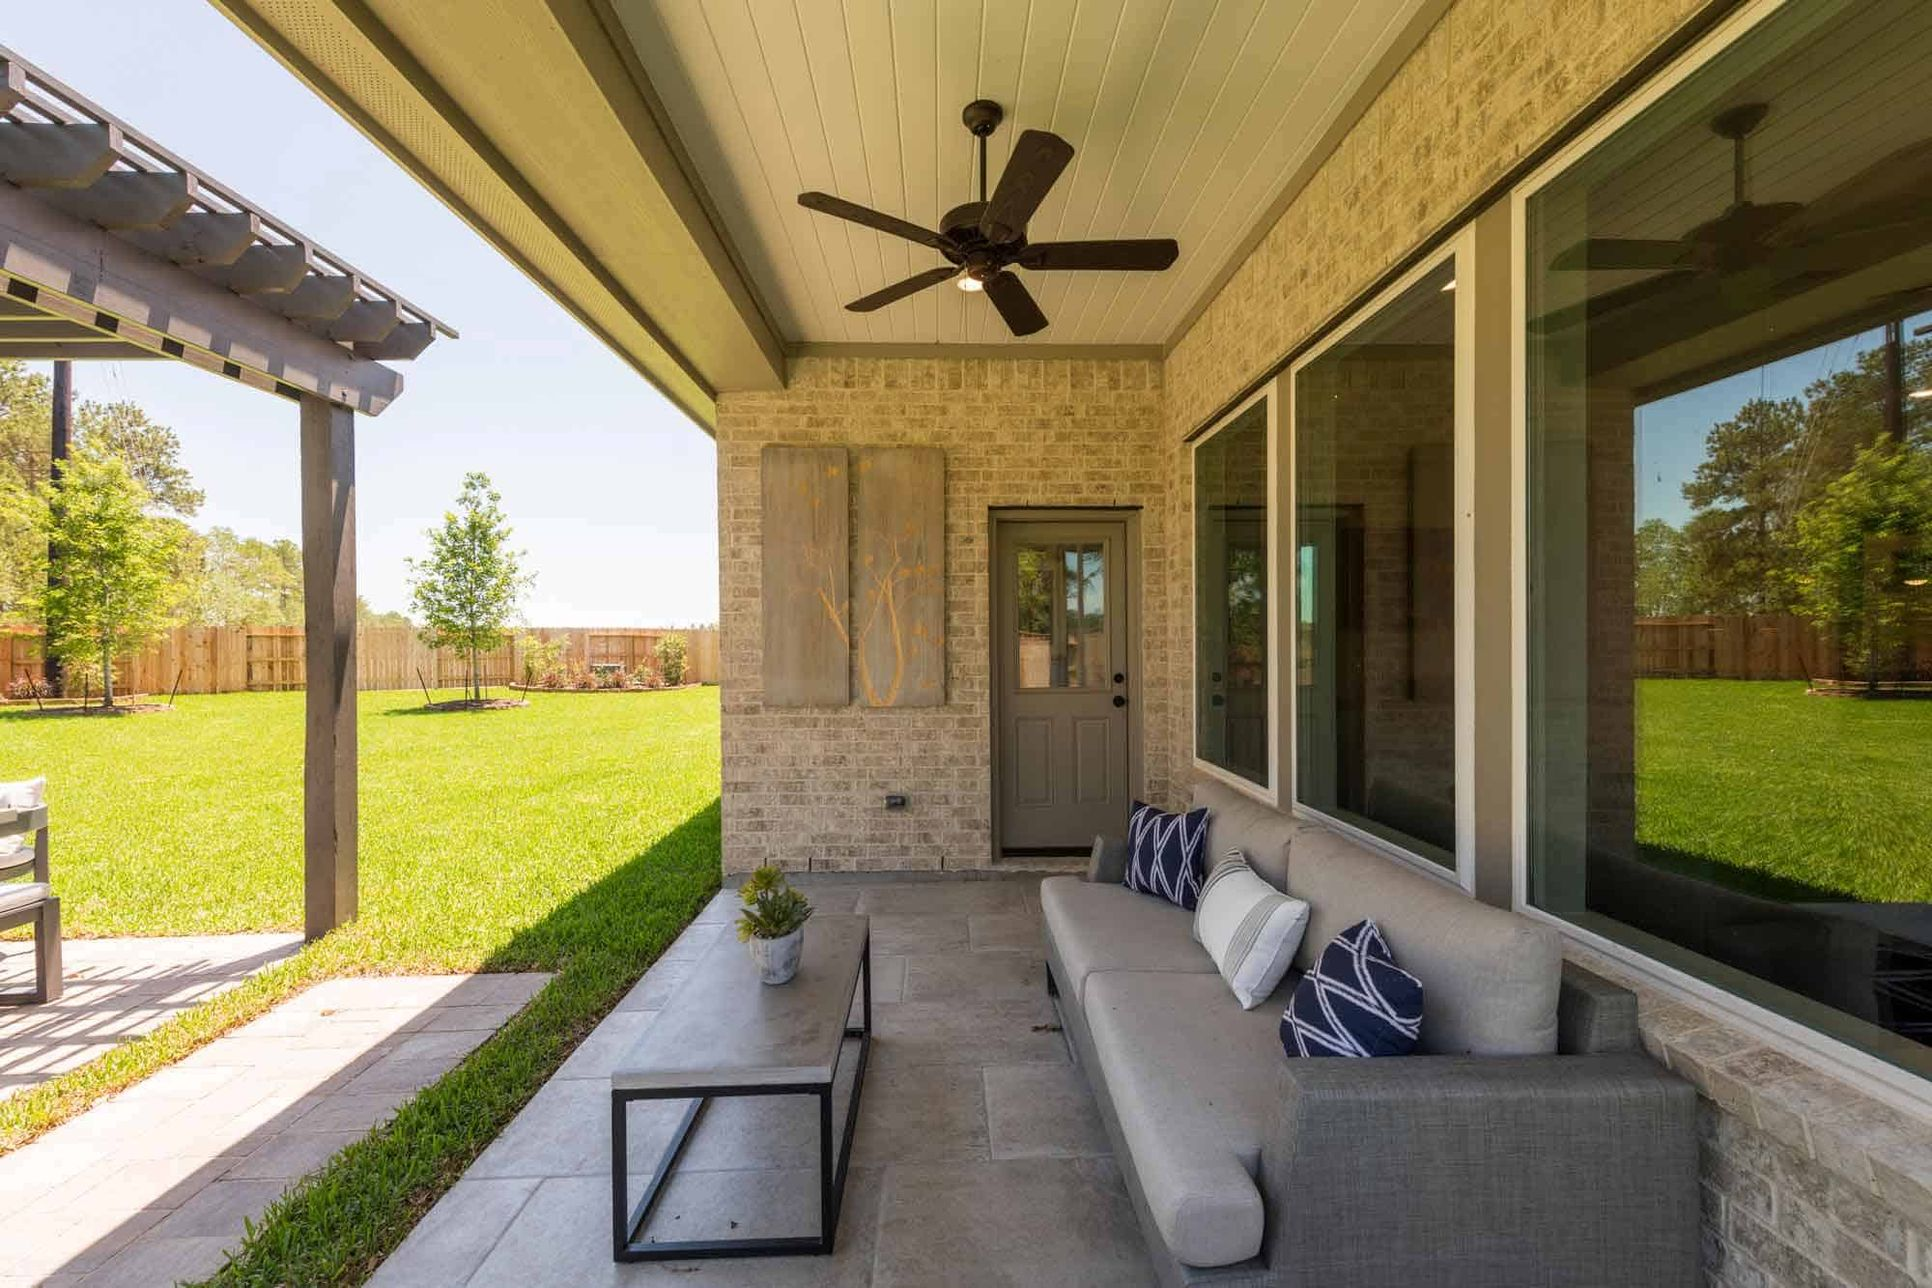 Representational Only | Harrier Plan | Covered Pat:Representational Only | Harrier Plan | Covered Patio